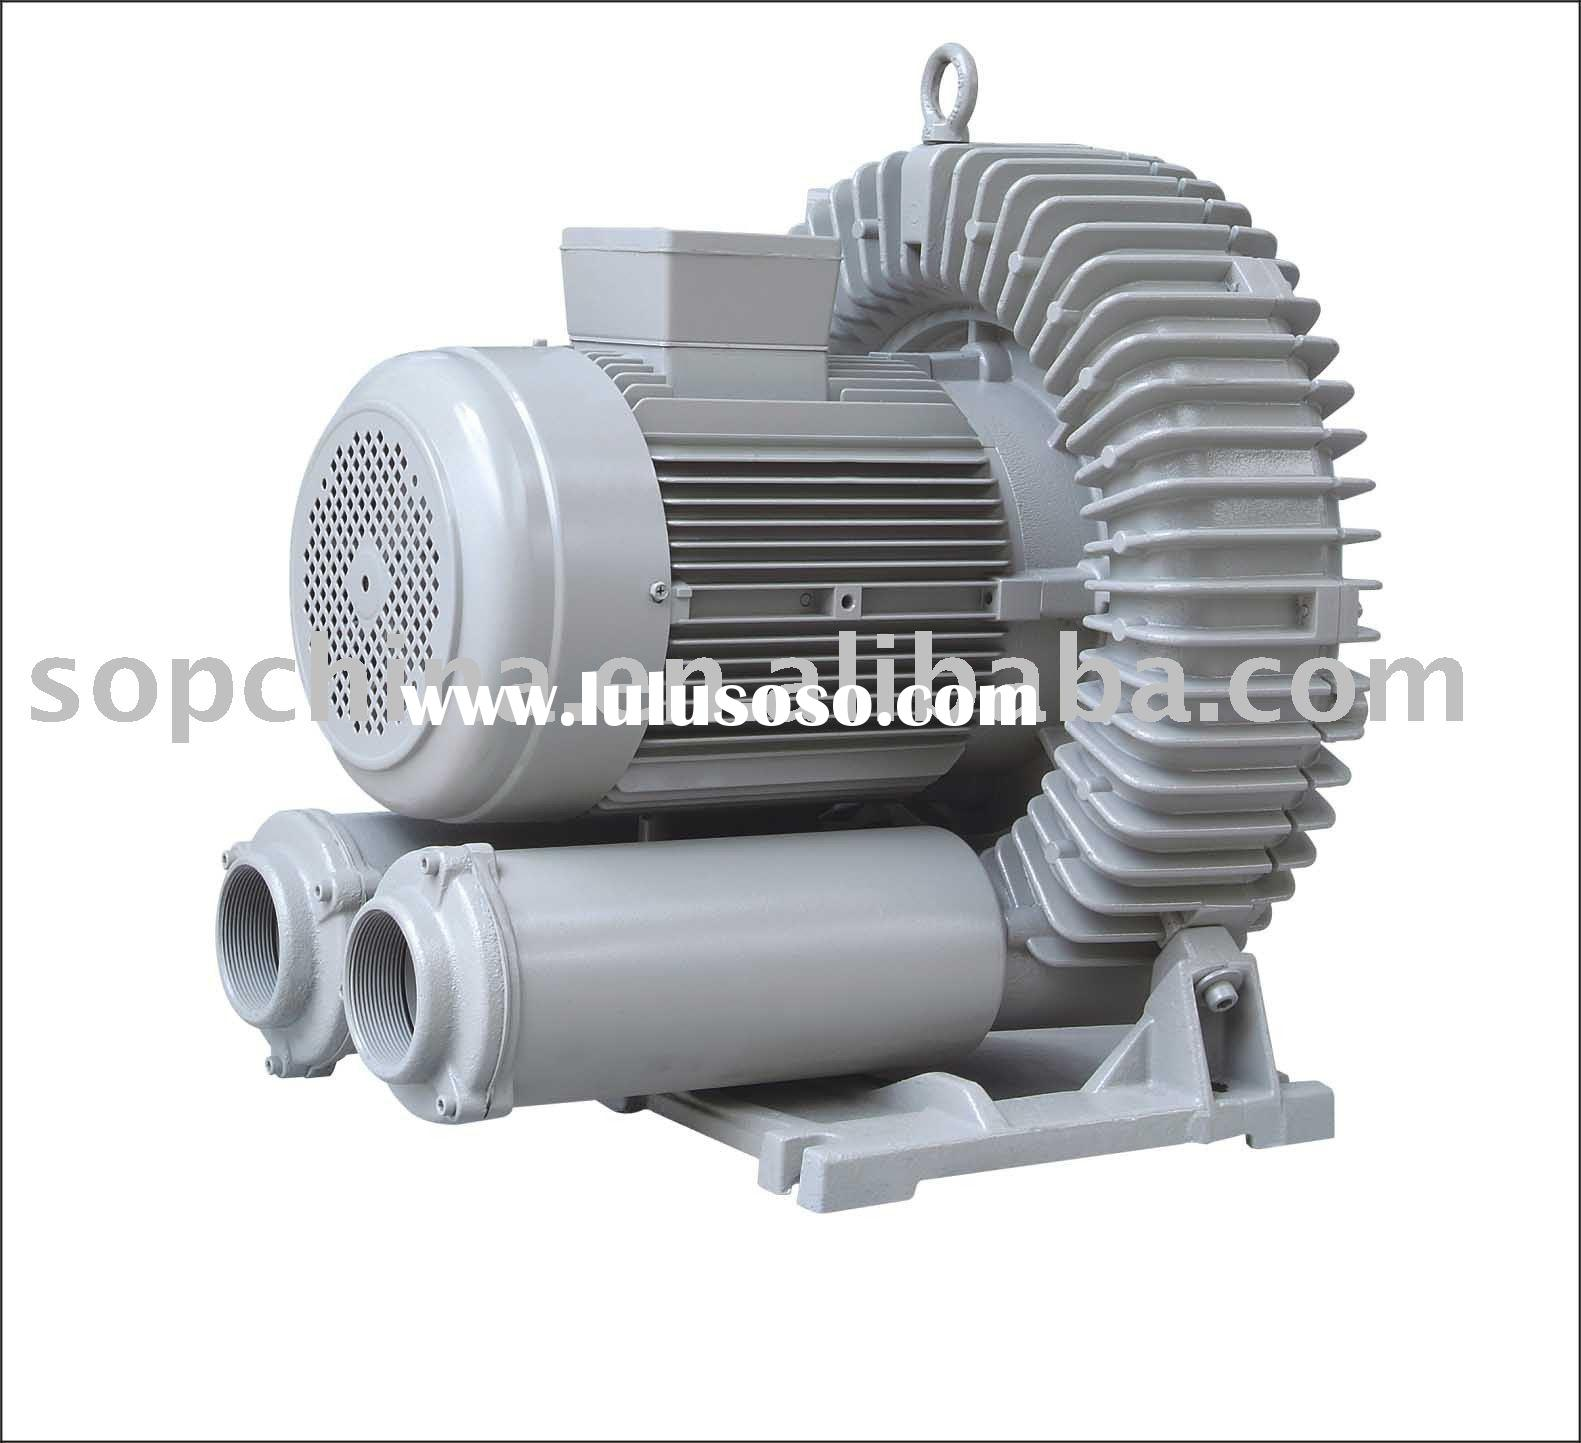 Small Industrial Fans And Blowers : Hz single phase industrial fan blower and air